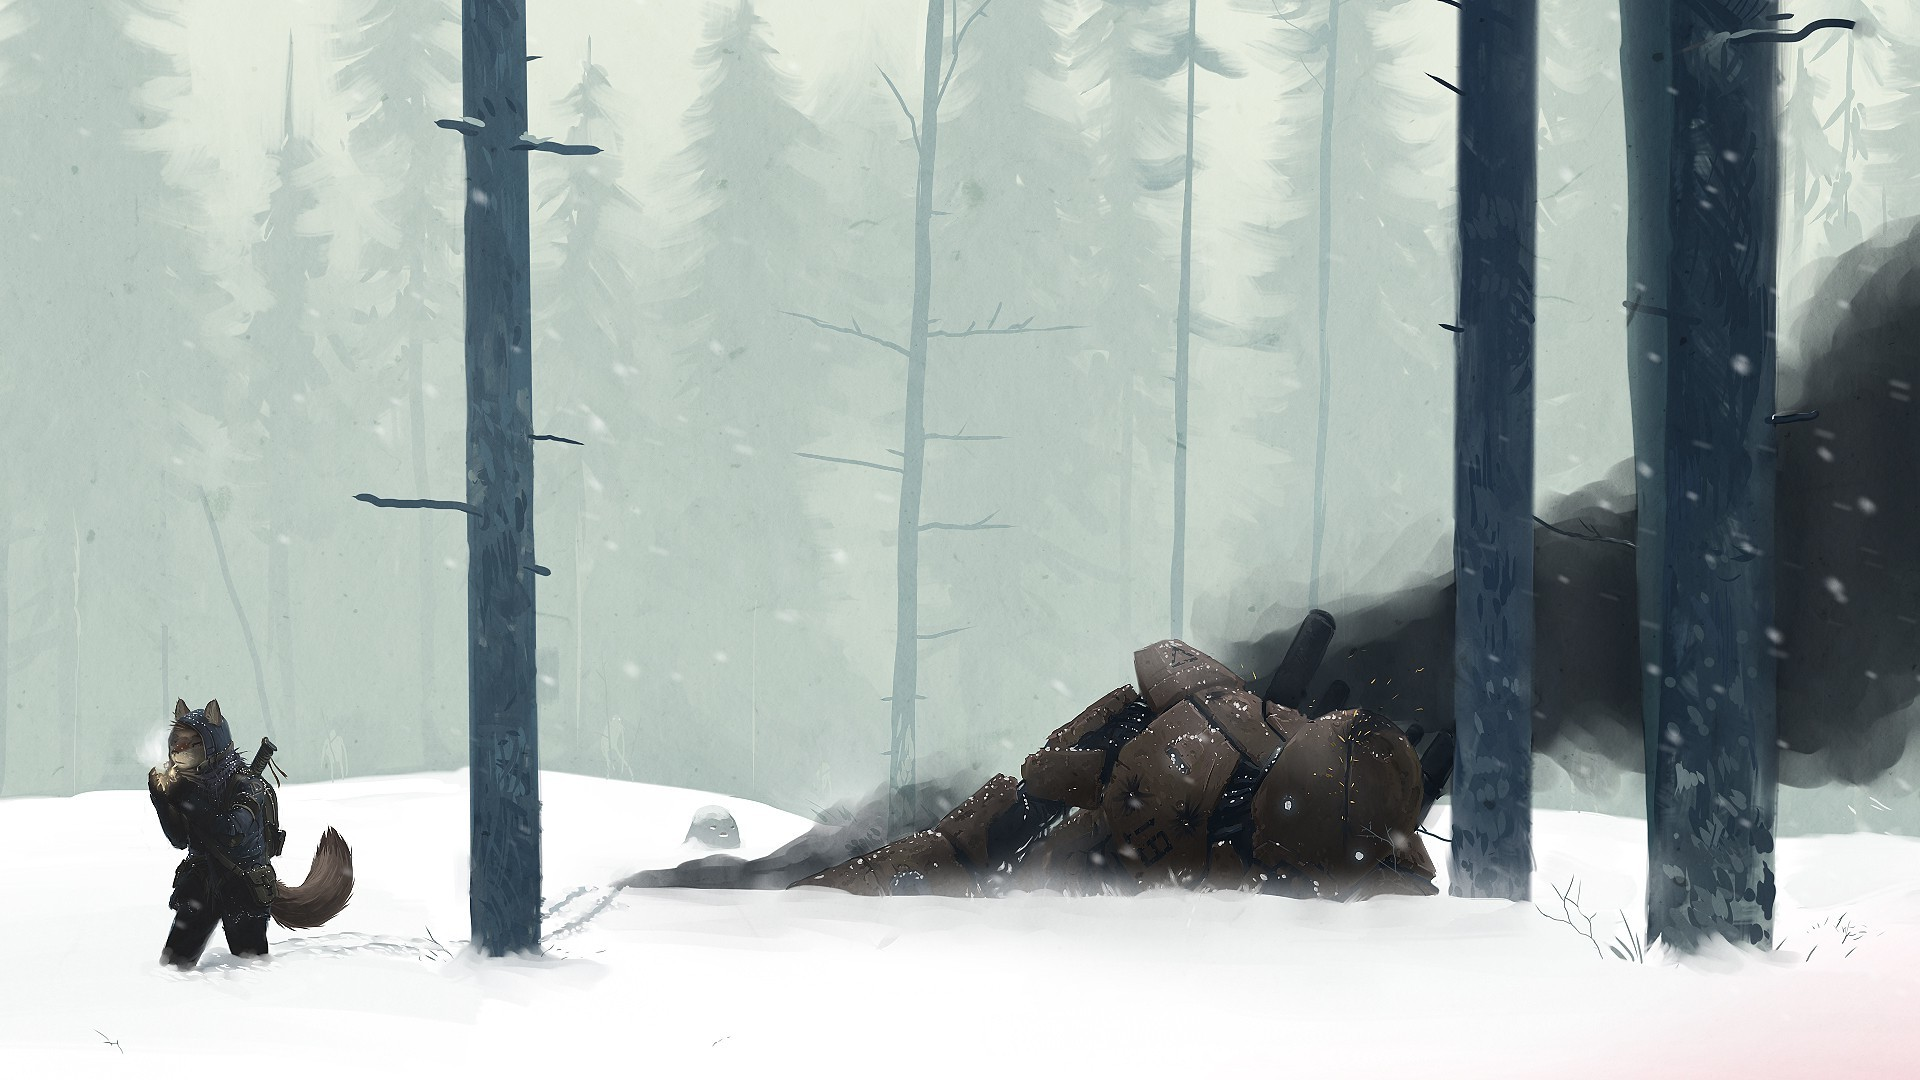 snow, Mech, Creature, Wood, Forest, Winter, Anime, Furry, Smoking  Wallpapers HD / Desktop and Mobile Backgrounds